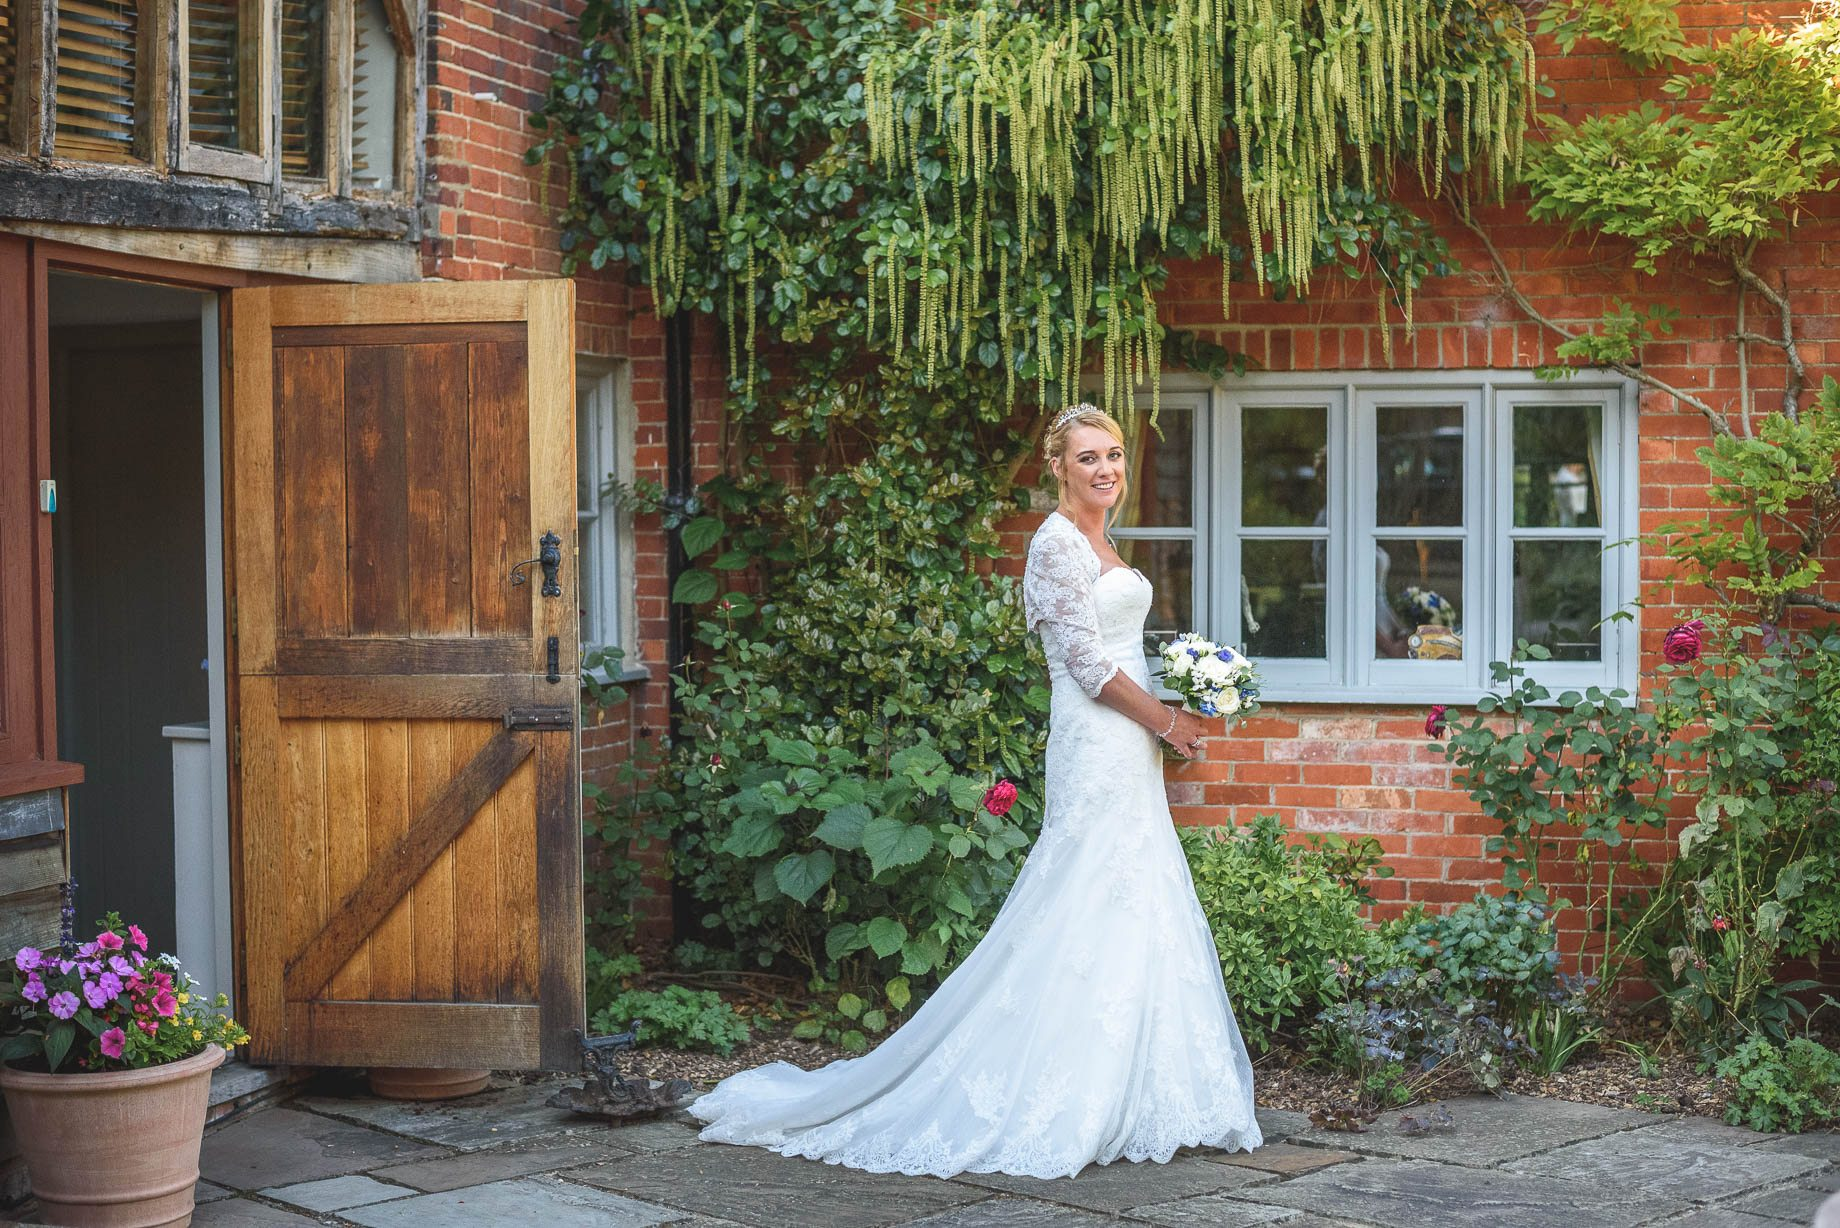 Hampshire wedding photography - Emily and Rob - Guy Collier Photography (117 of 192)